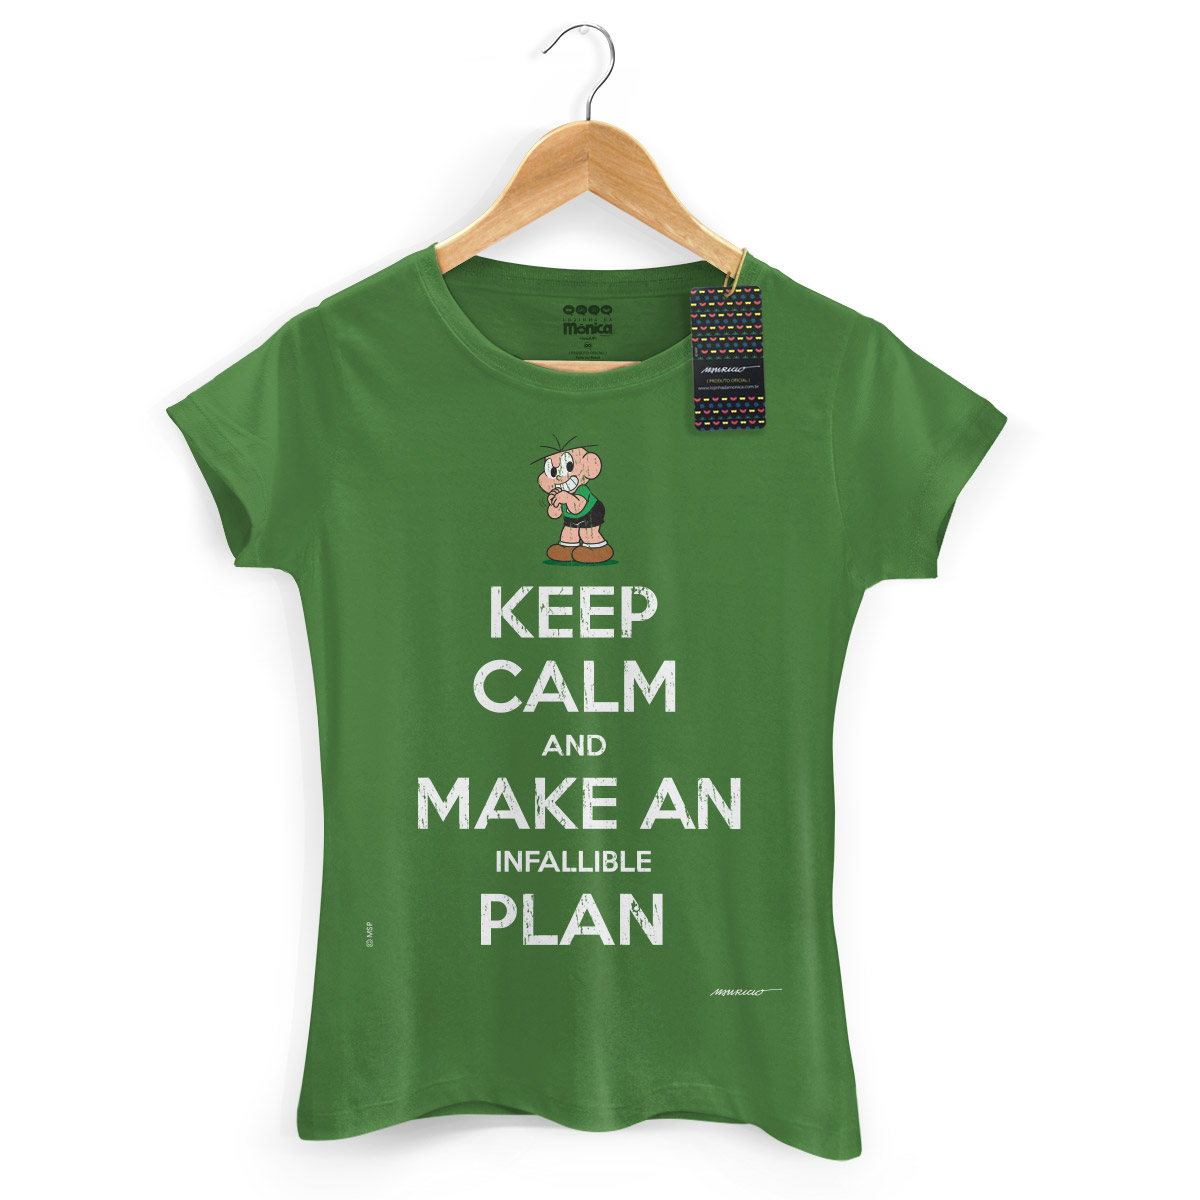 Camiseta Feminina Turma Da Mônica Cool Keep Calm And Make Infallible Plan